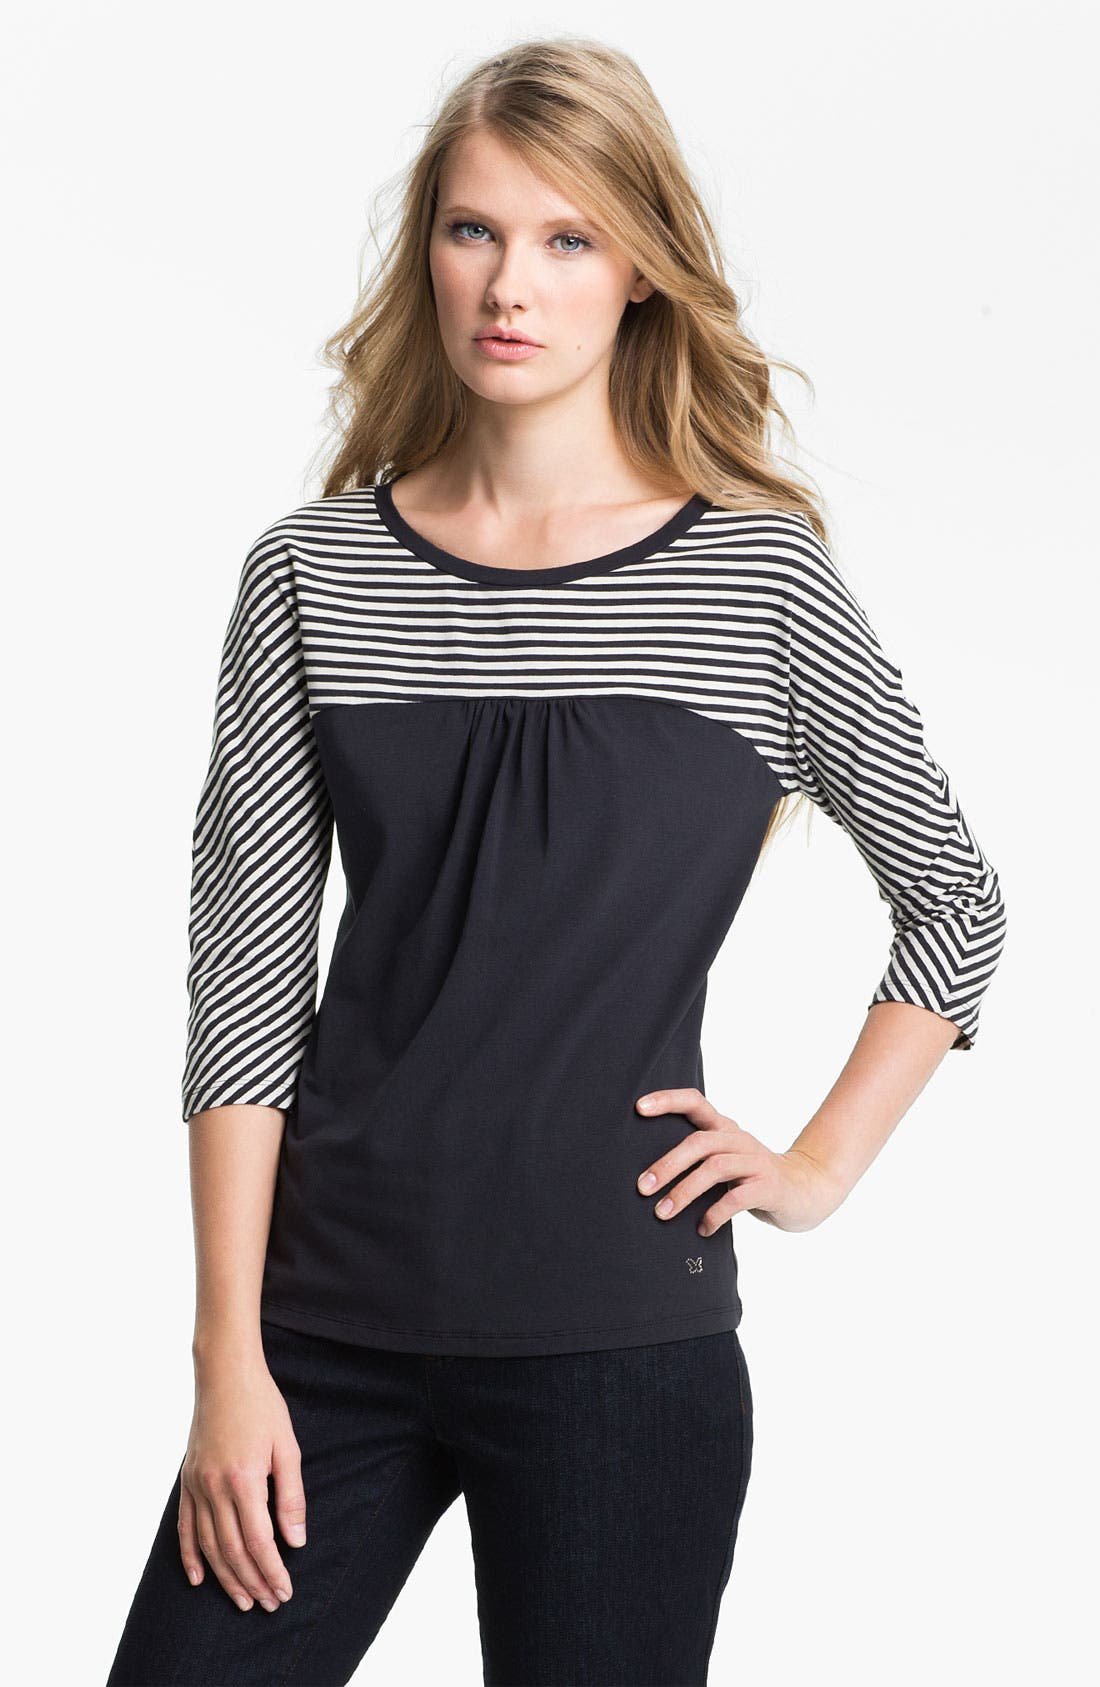 Main Image - Weekend Max Mara 'Ural' Colorblock Top